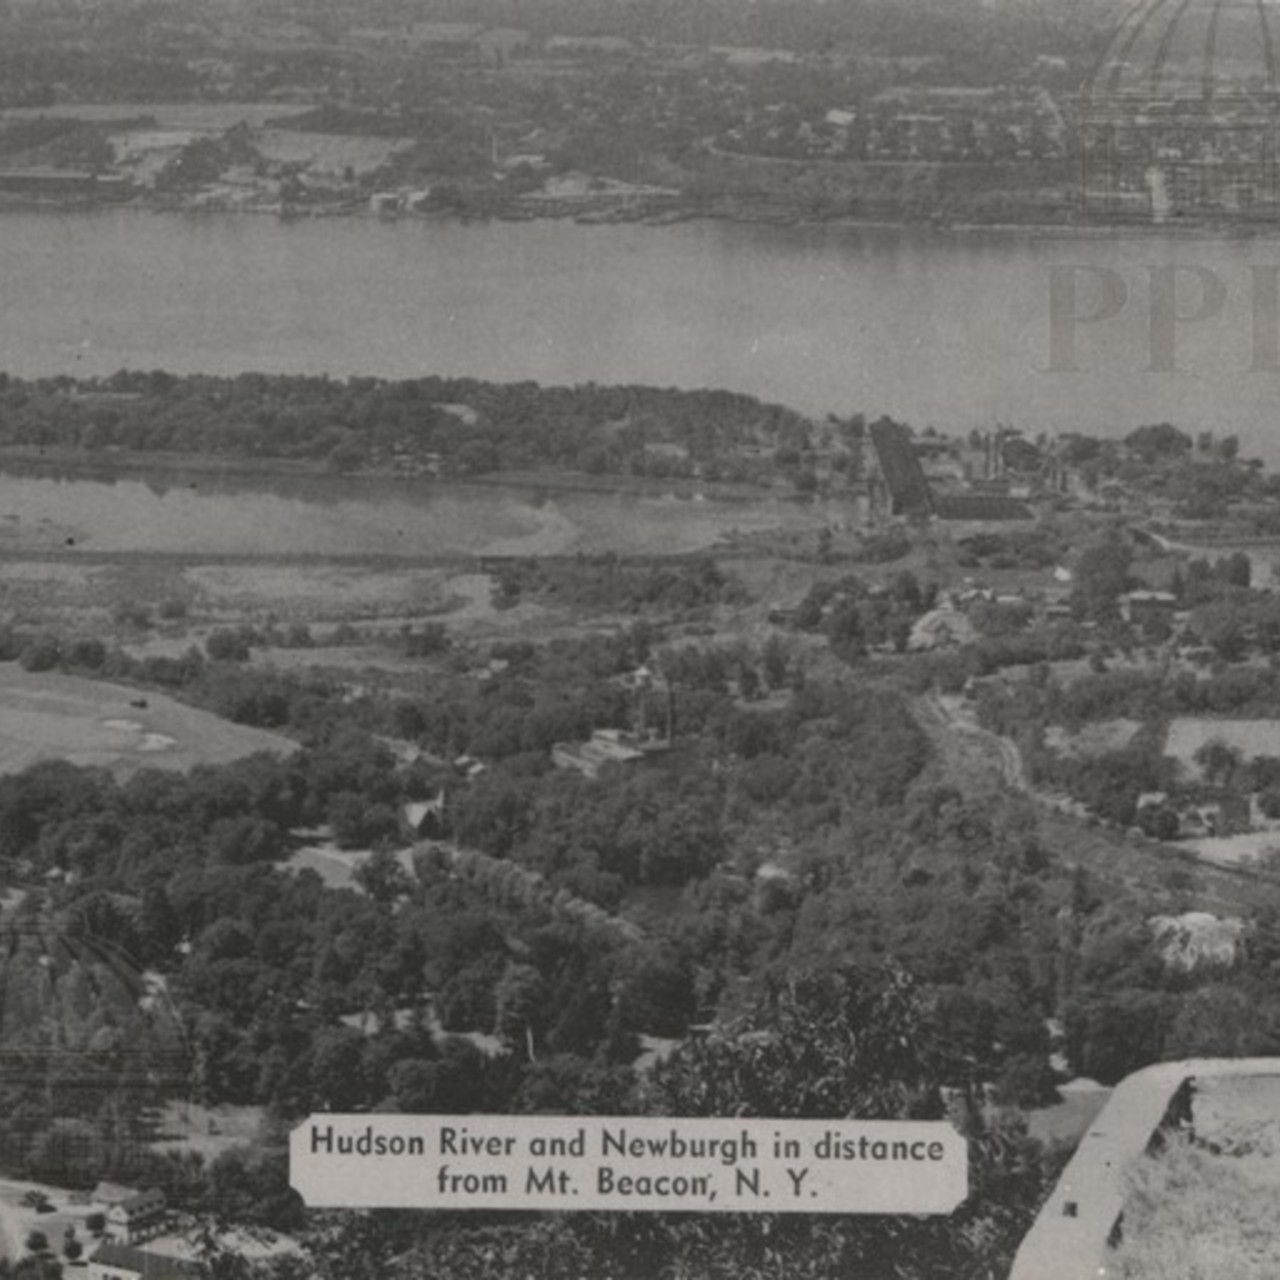 Hudson River & Newburgh in distance from Mt. Beacon, N.Y.